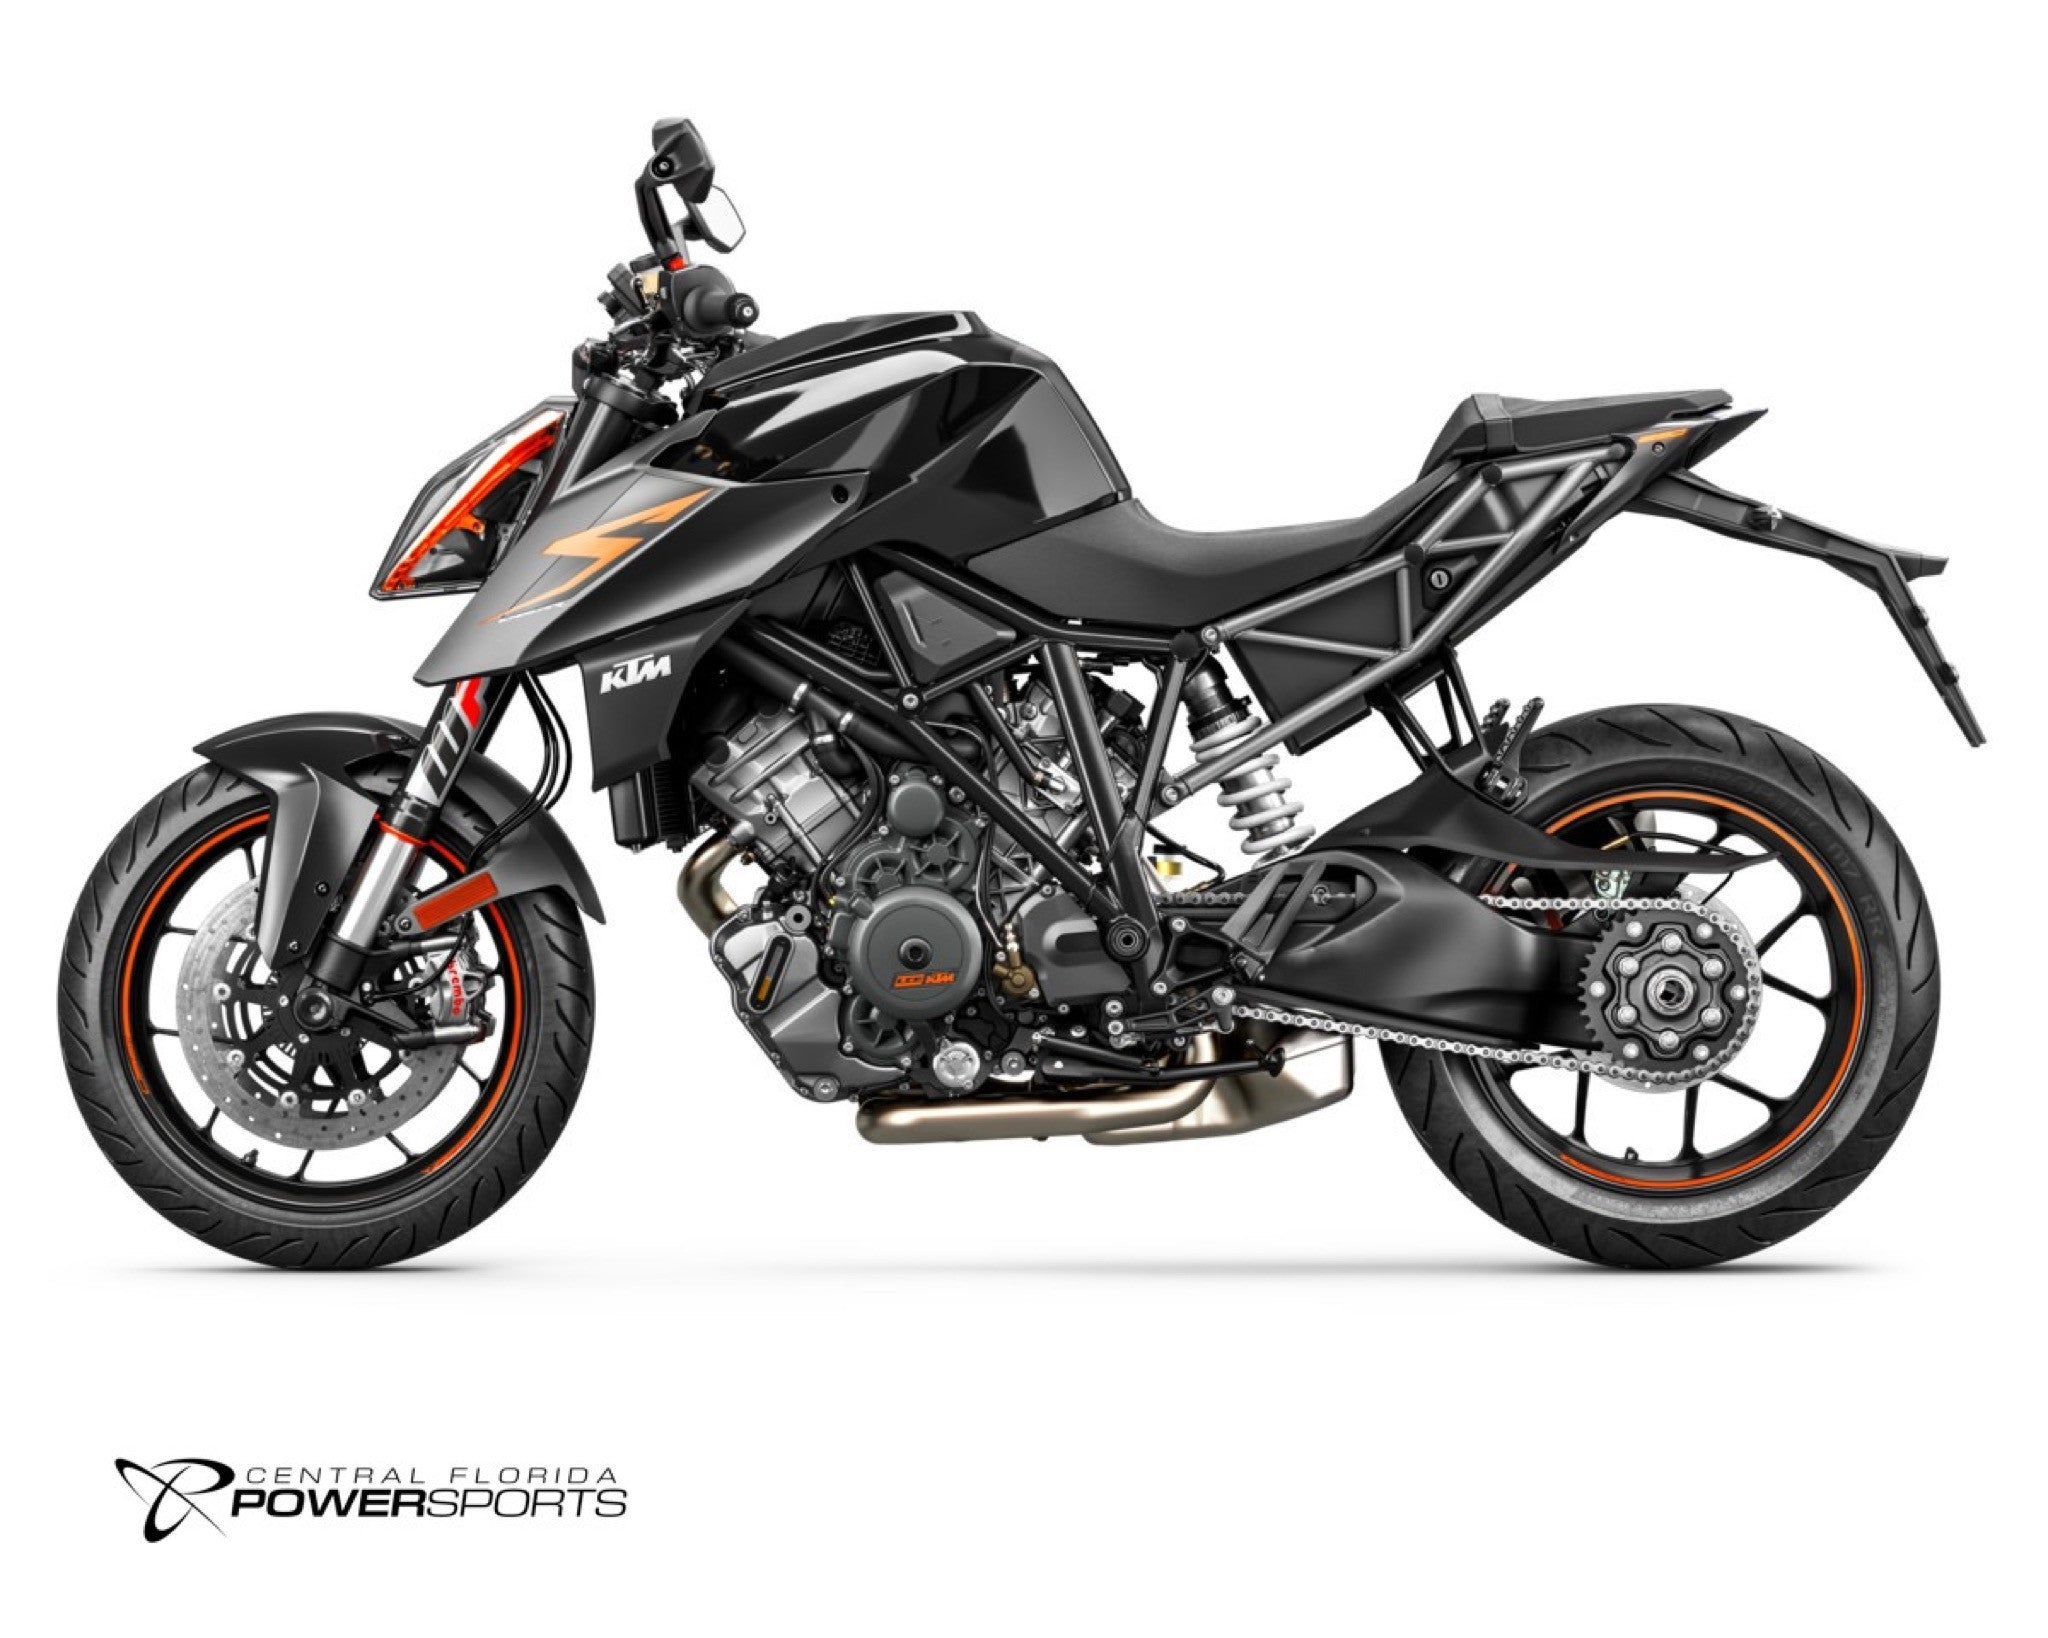 ... 2017 KTM 1290 Super Duke R - Motorcycle For Sale - Central Florida  PowerSports ...